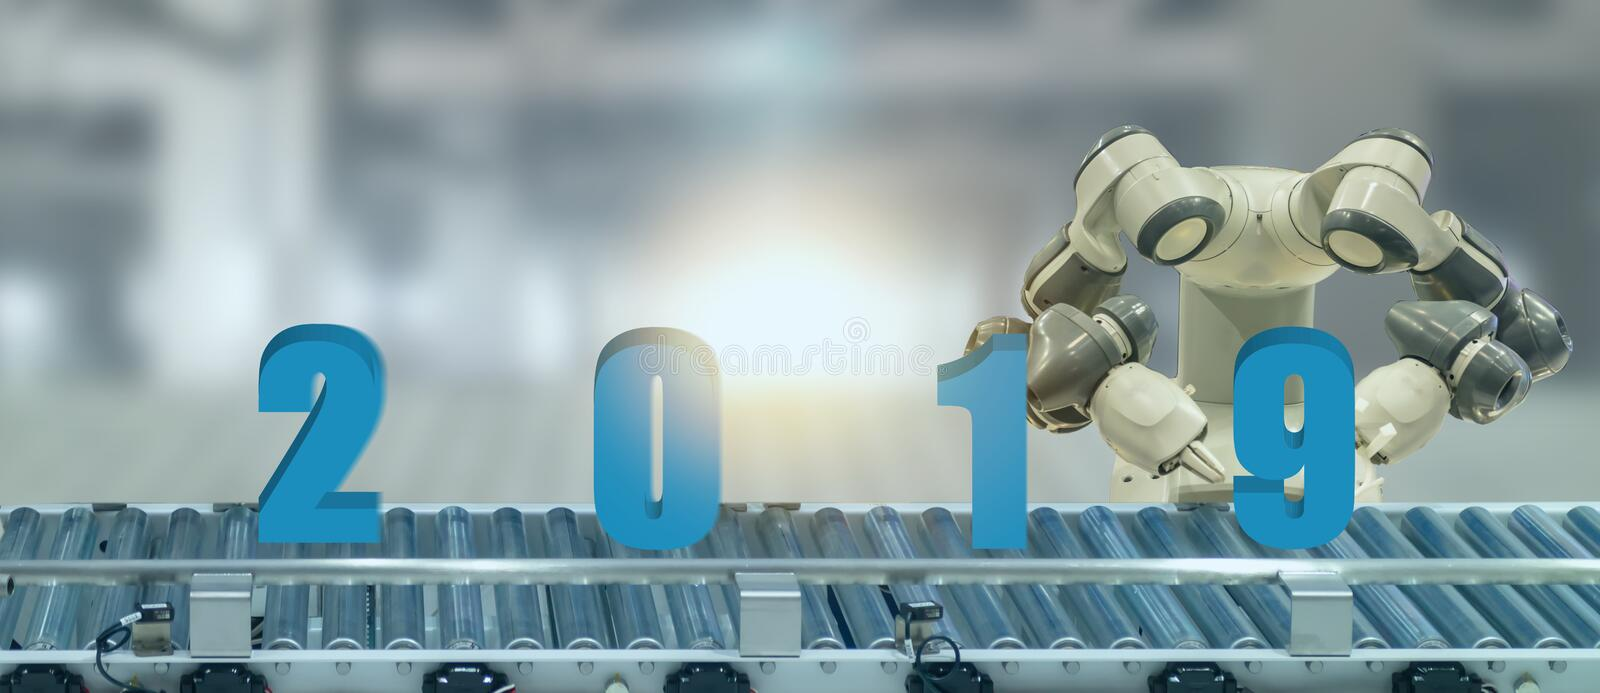 2019 year artificial intelligence or ai futuristic concept, assistant robot try to put number of new year coming 2019 on operatio royalty free illustration